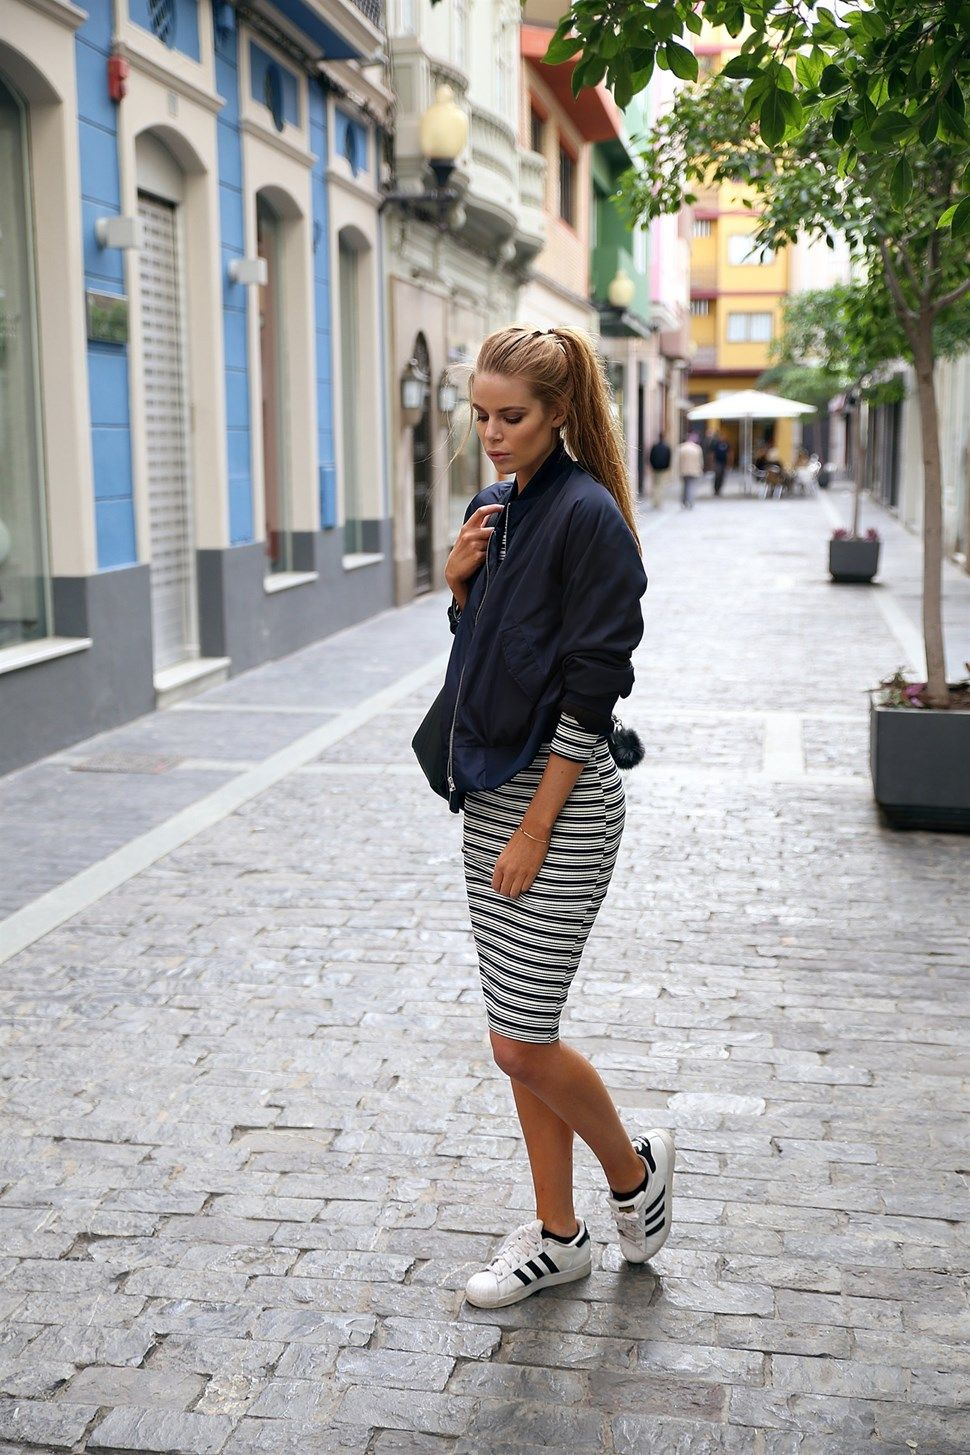 Josefin Ekström shows us how to wear a bomber jacket with dresses, creating a contrast between the tightness of the midi dress and the oversized nature of the jacket. This look is ultra cool, and can be dressed up or down! Bomber Jacket - Josefin Ekström for Na-kd / Dress - Bershka